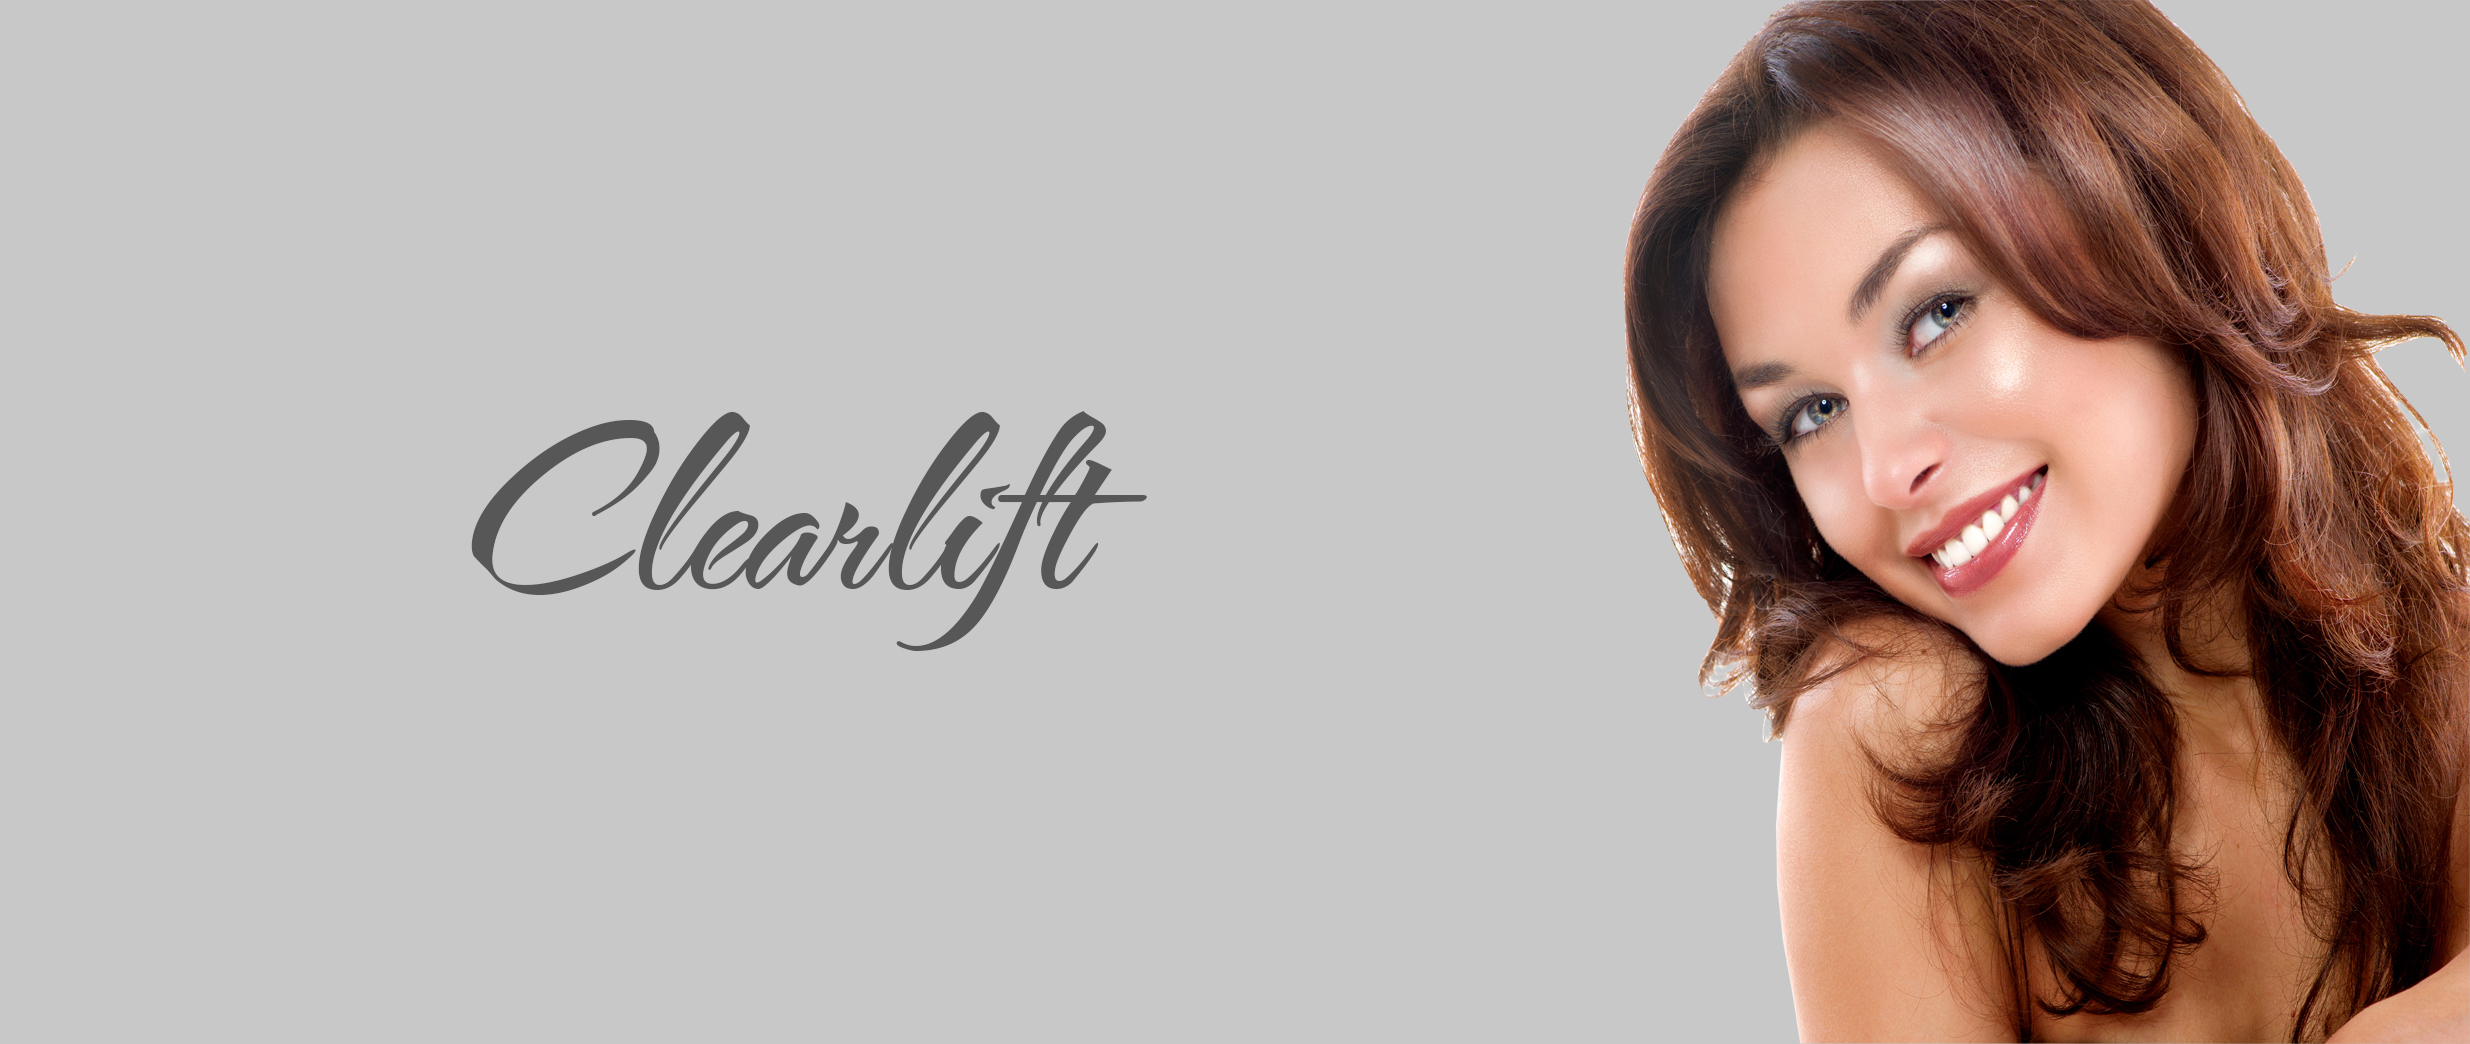 Clearlift Laser Facelift Clearlift Laser Facial